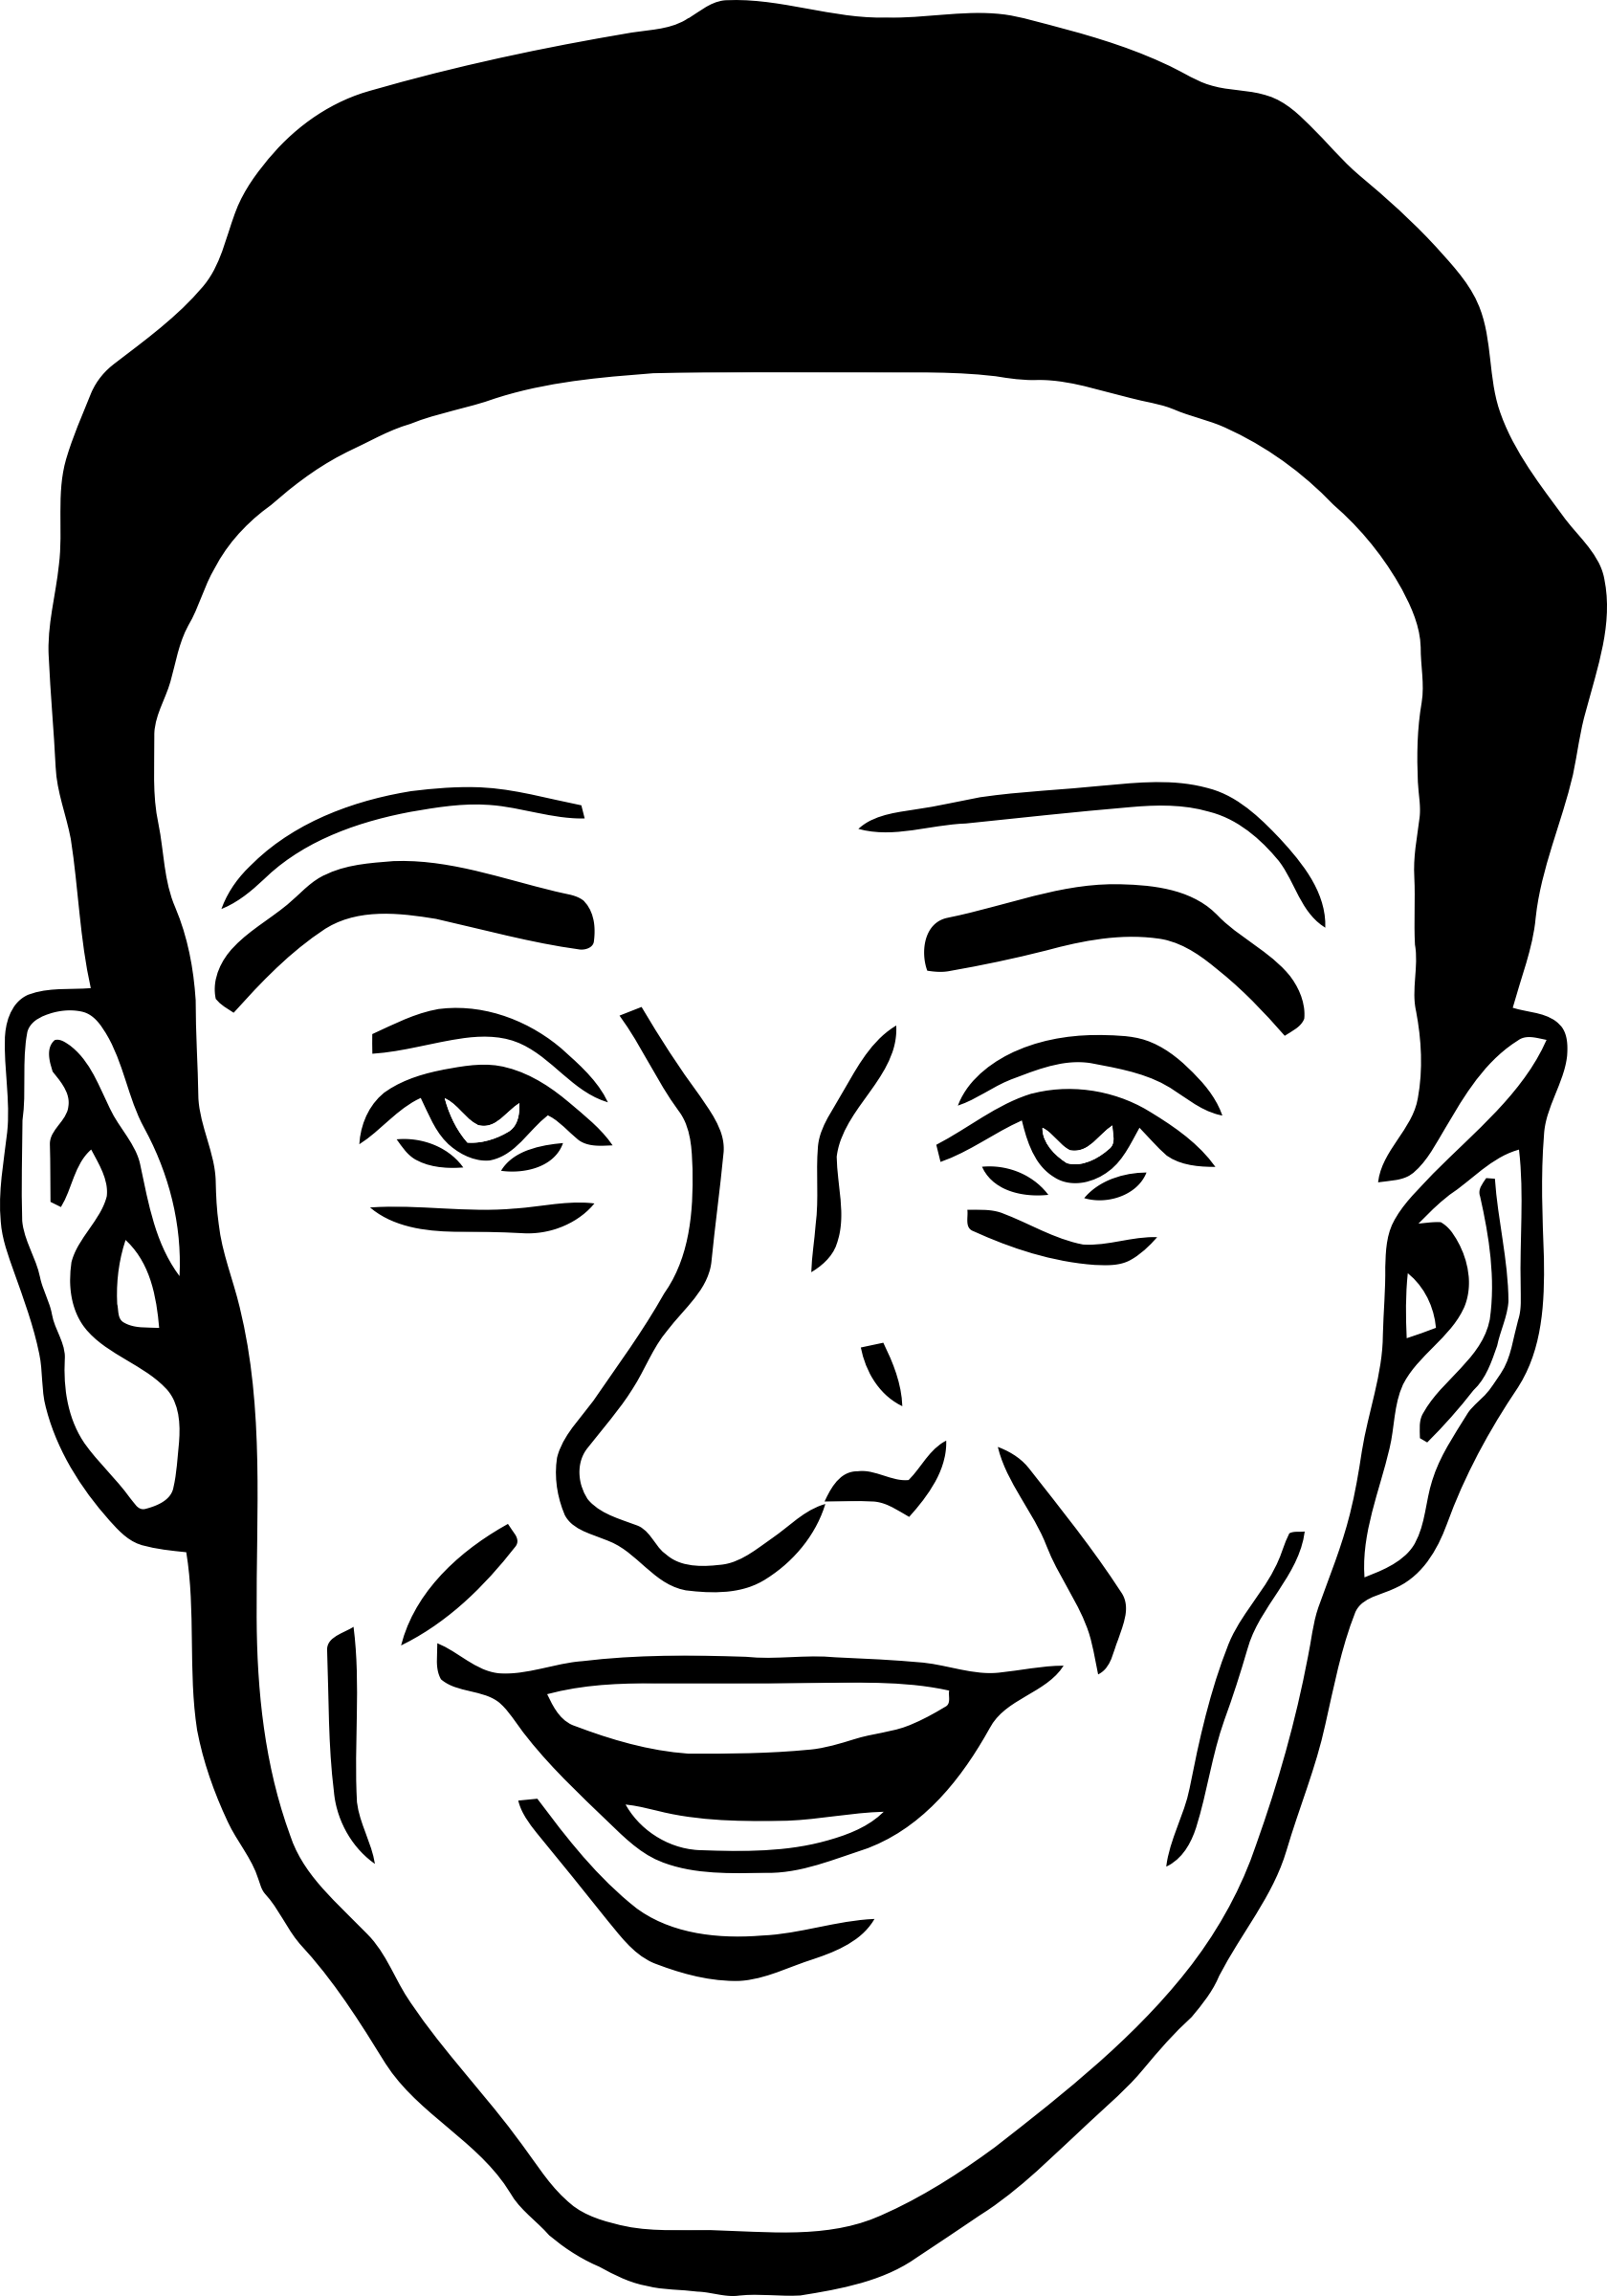 Man Face Clipart Black And White.